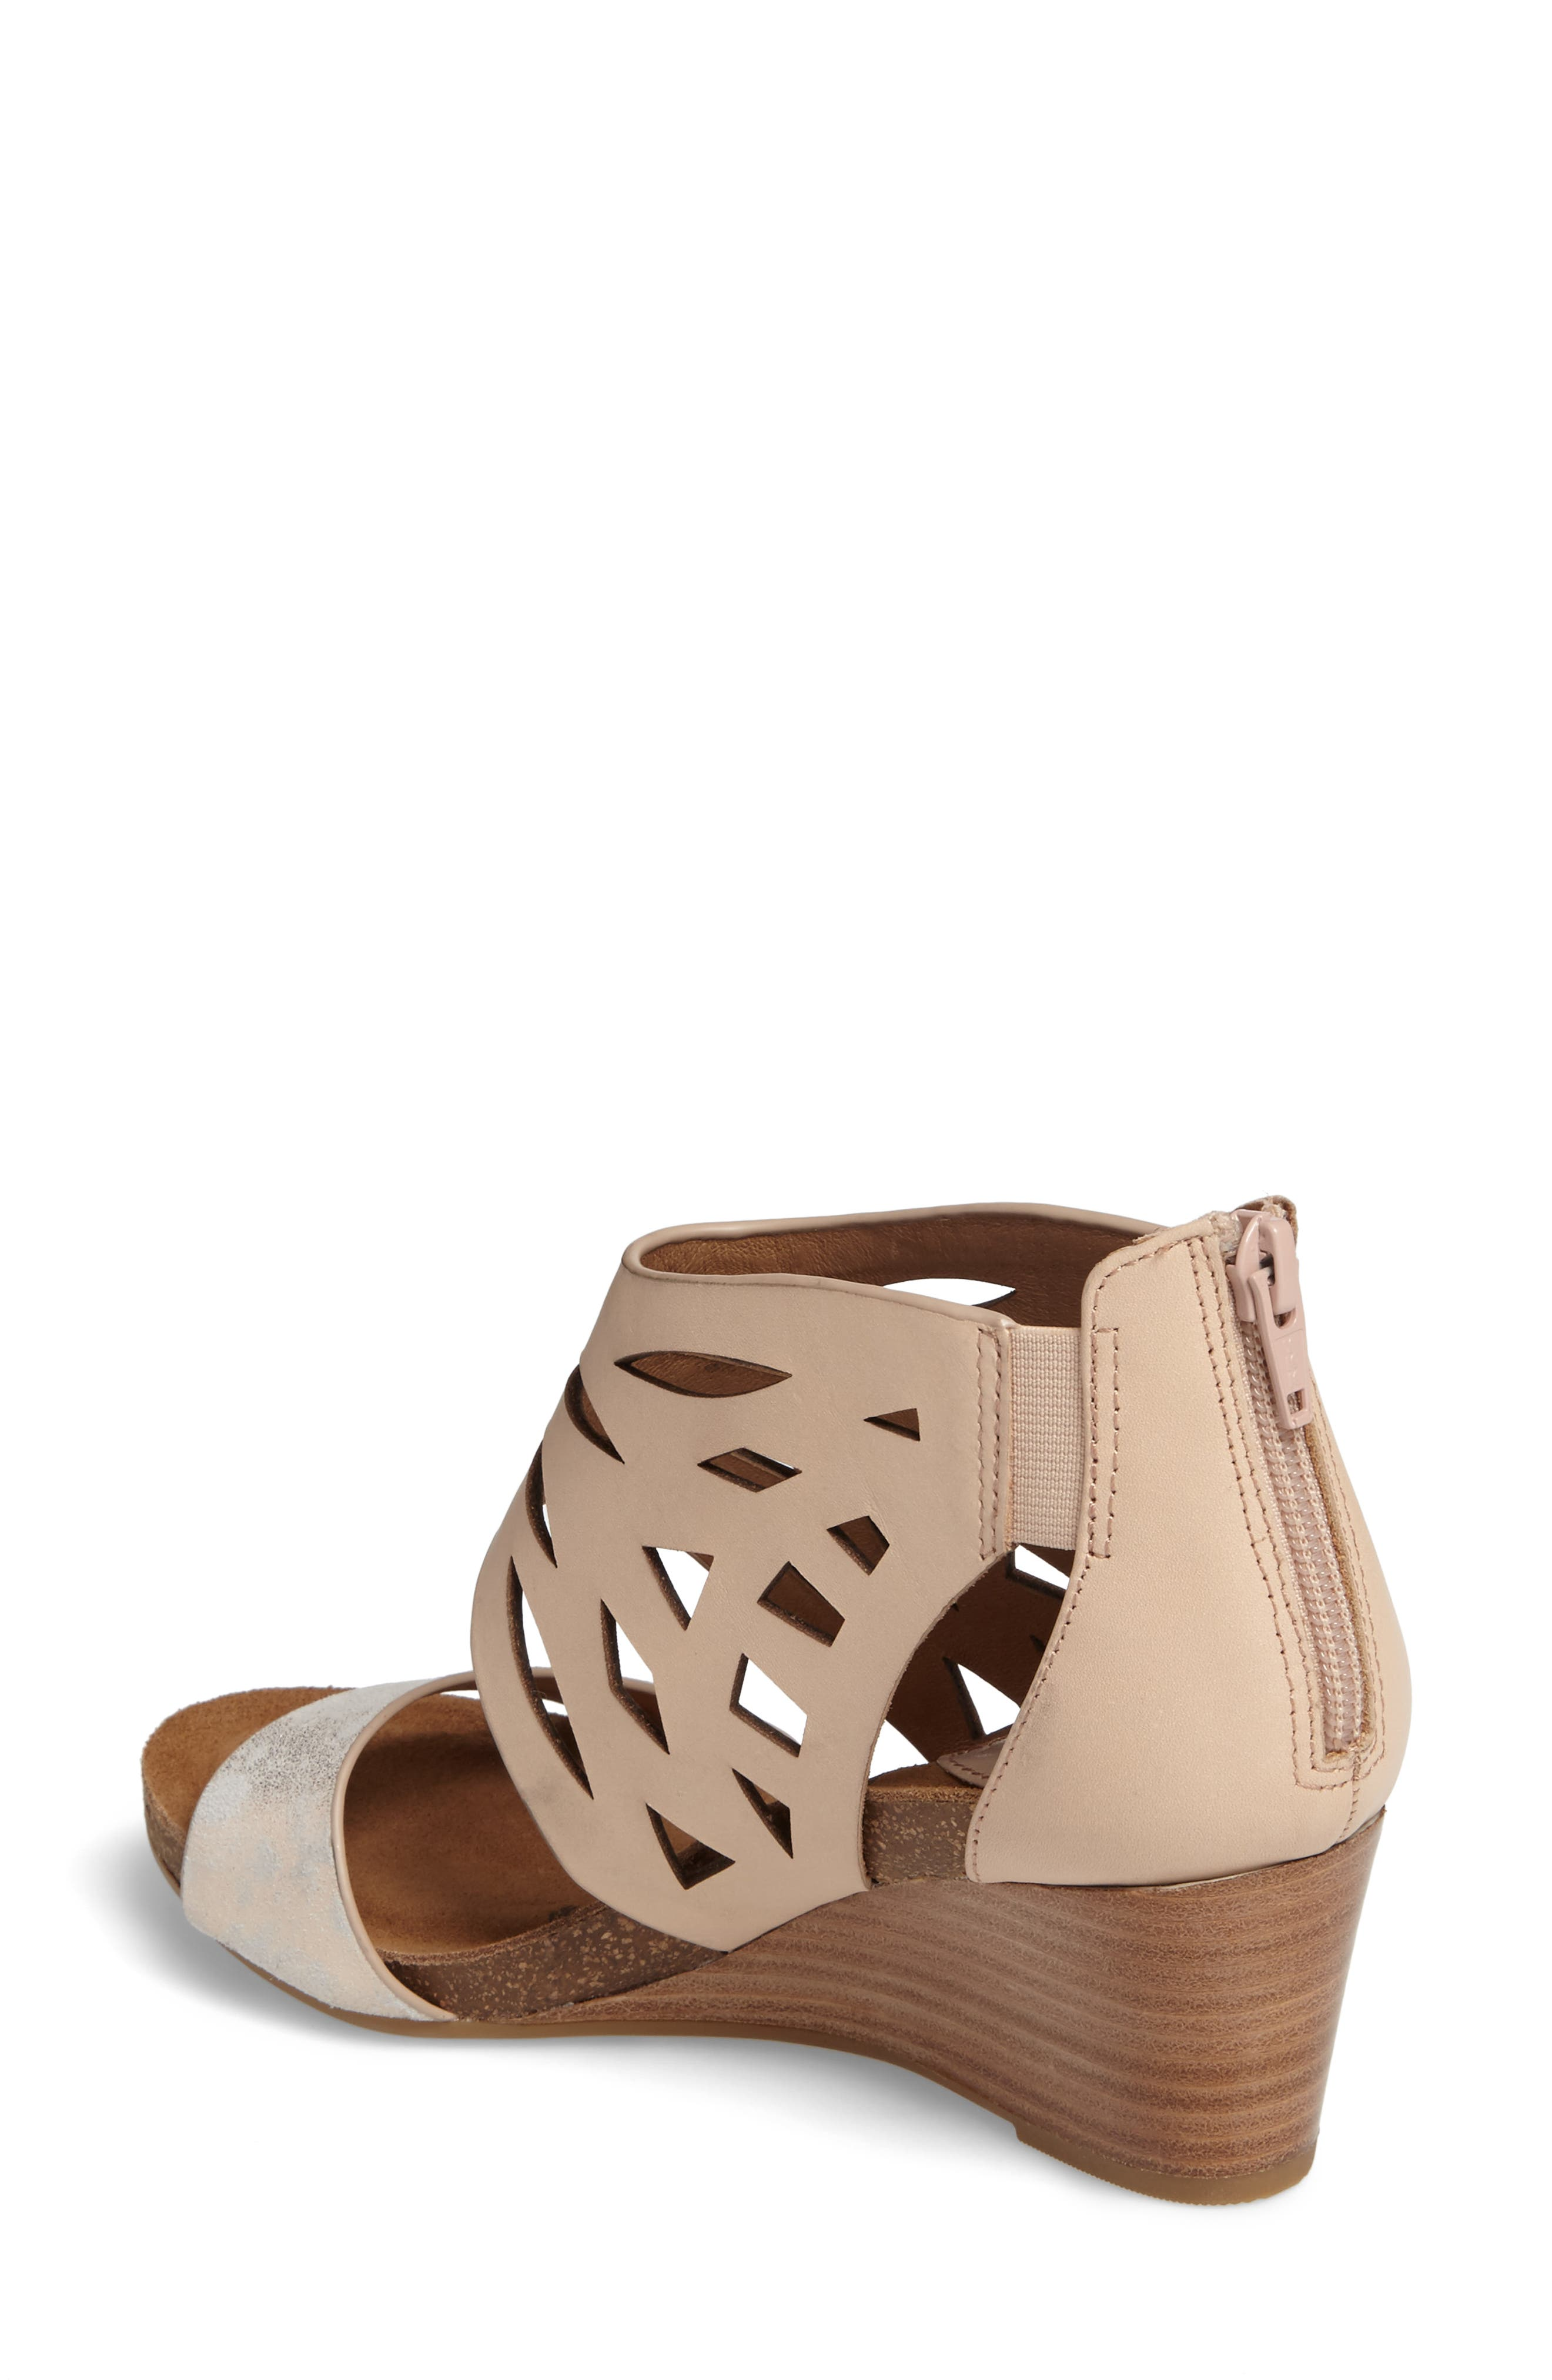 Mystic Perforated Wedge Sandal,                             Alternate thumbnail 2, color,